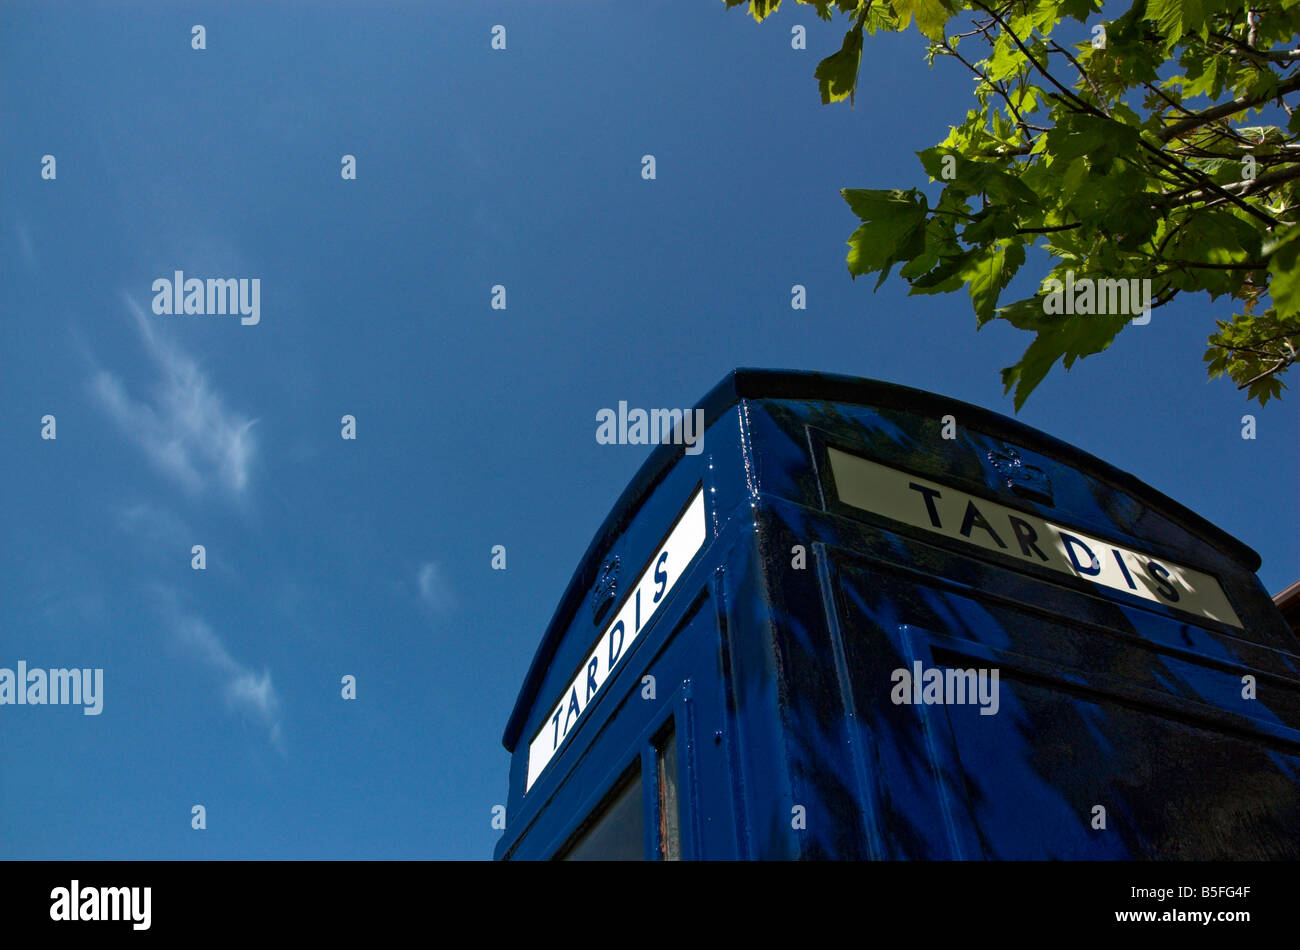 An old english telephone booth painted blue as a tardis - Stock Image